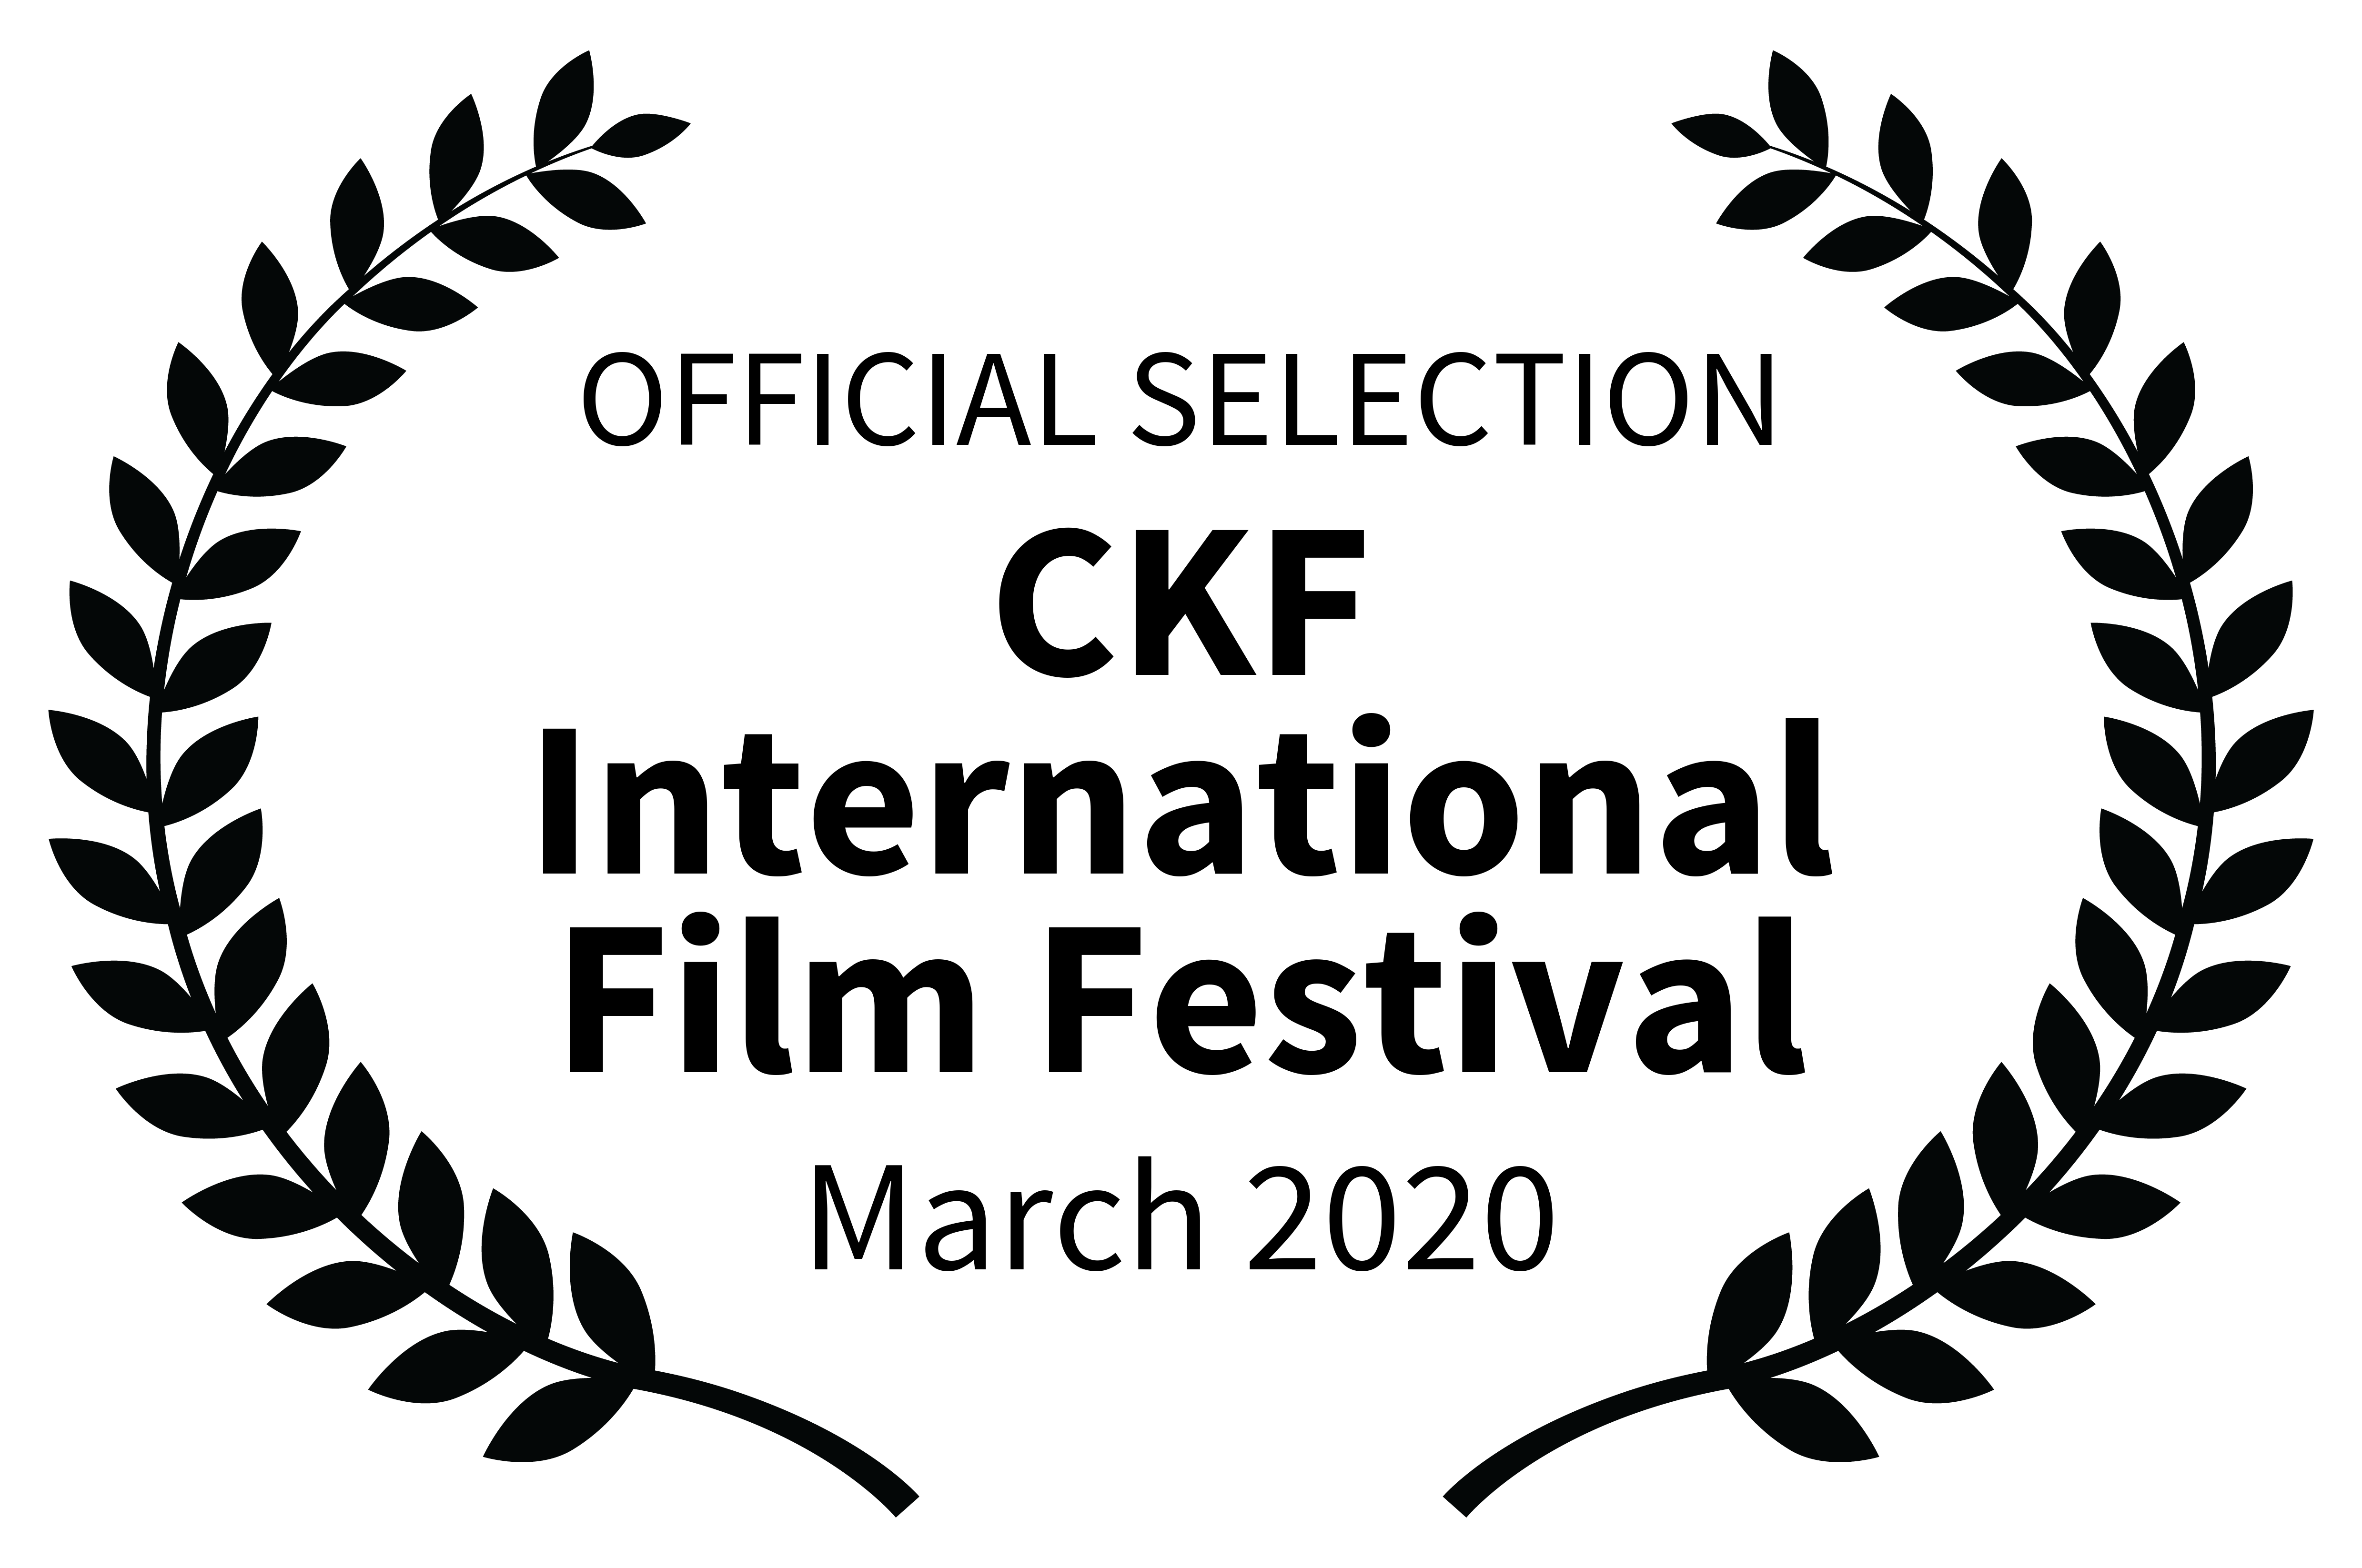 OFFICIALSELECTION-CKFInternationalFilmFestival-March2020